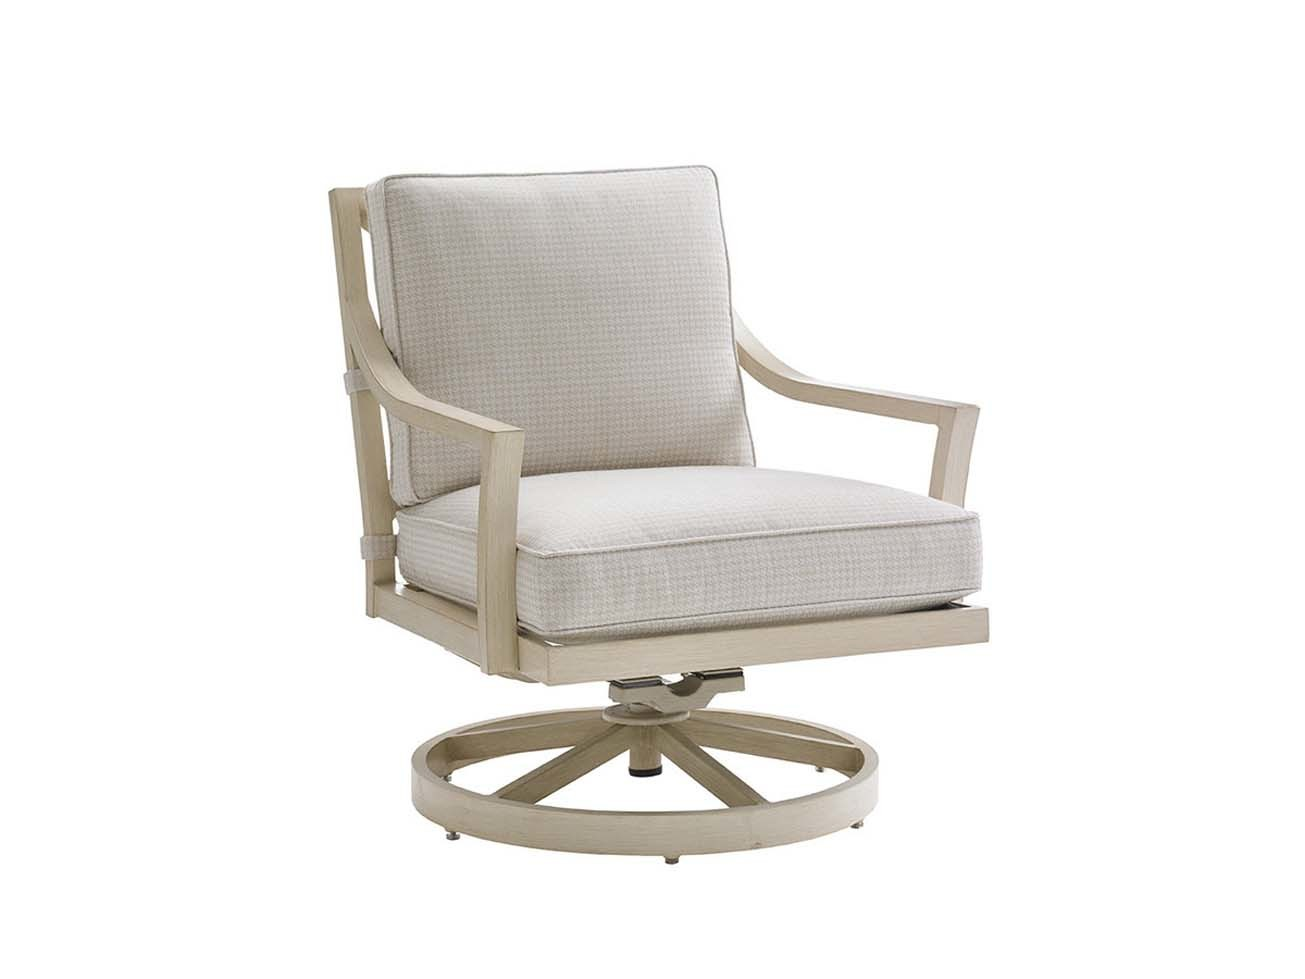 Swivel Rocking Chairs Misty Garden Swivel Rocker Lounge Chair Hauser 39s Patio